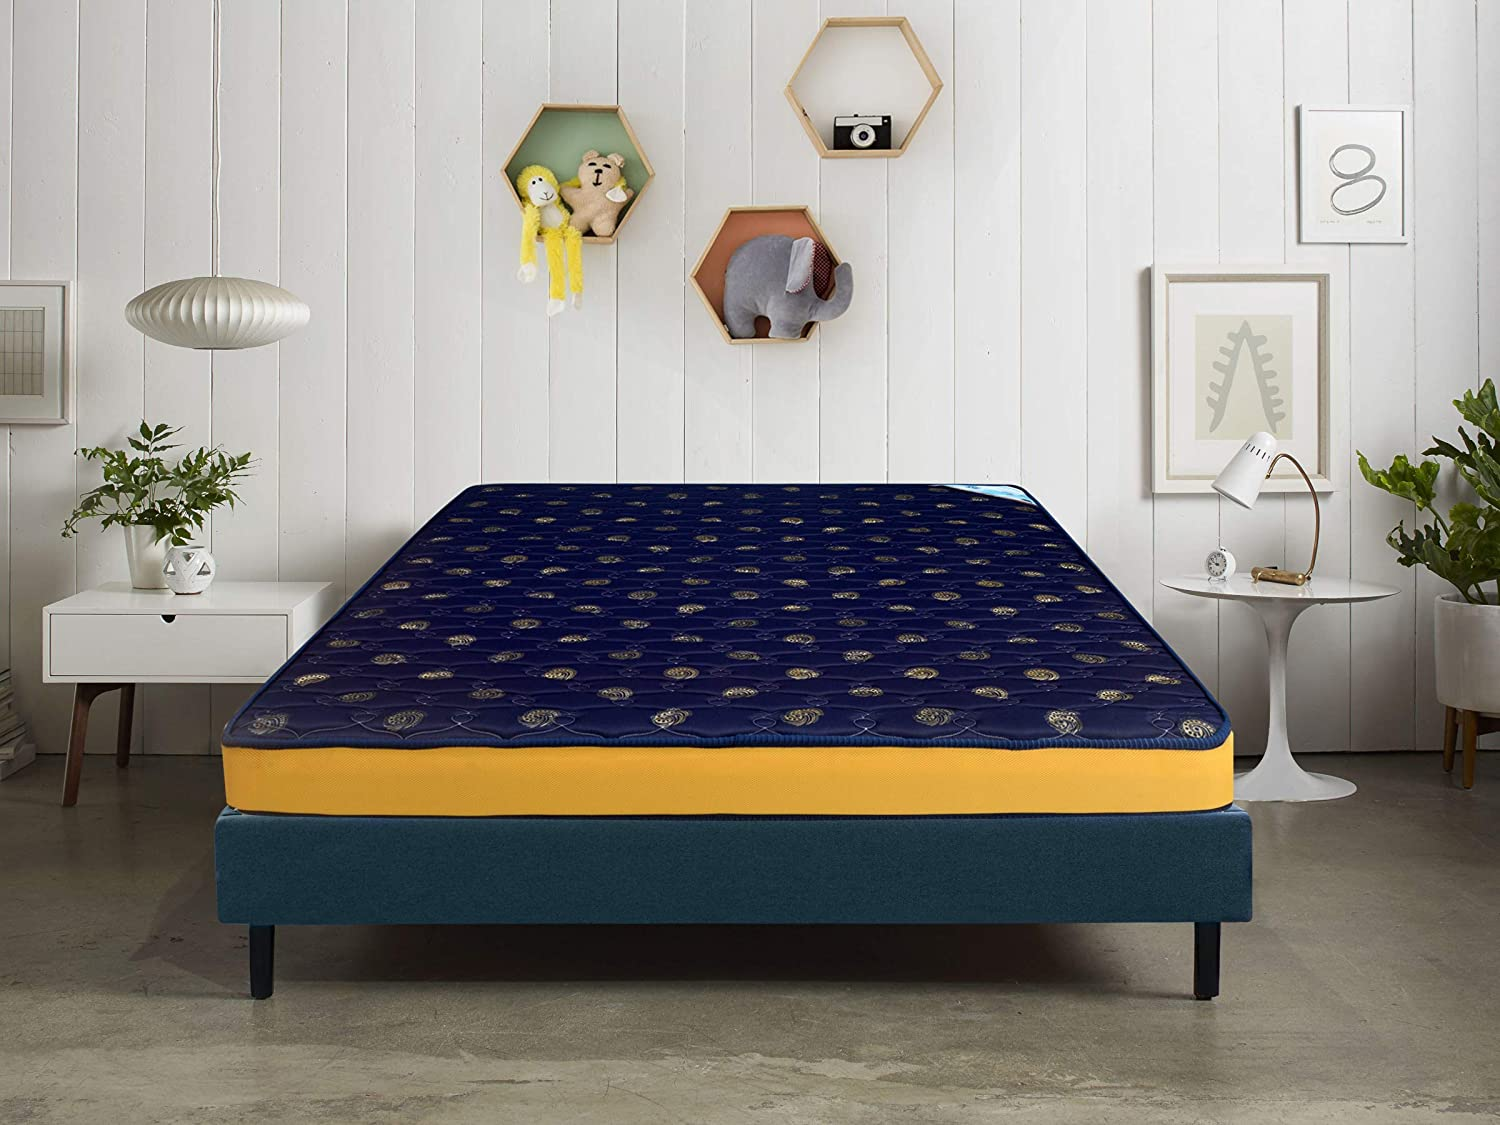 Nilkamal 5-inch Double Size Coir Mattress (Blue, 75x60x5)